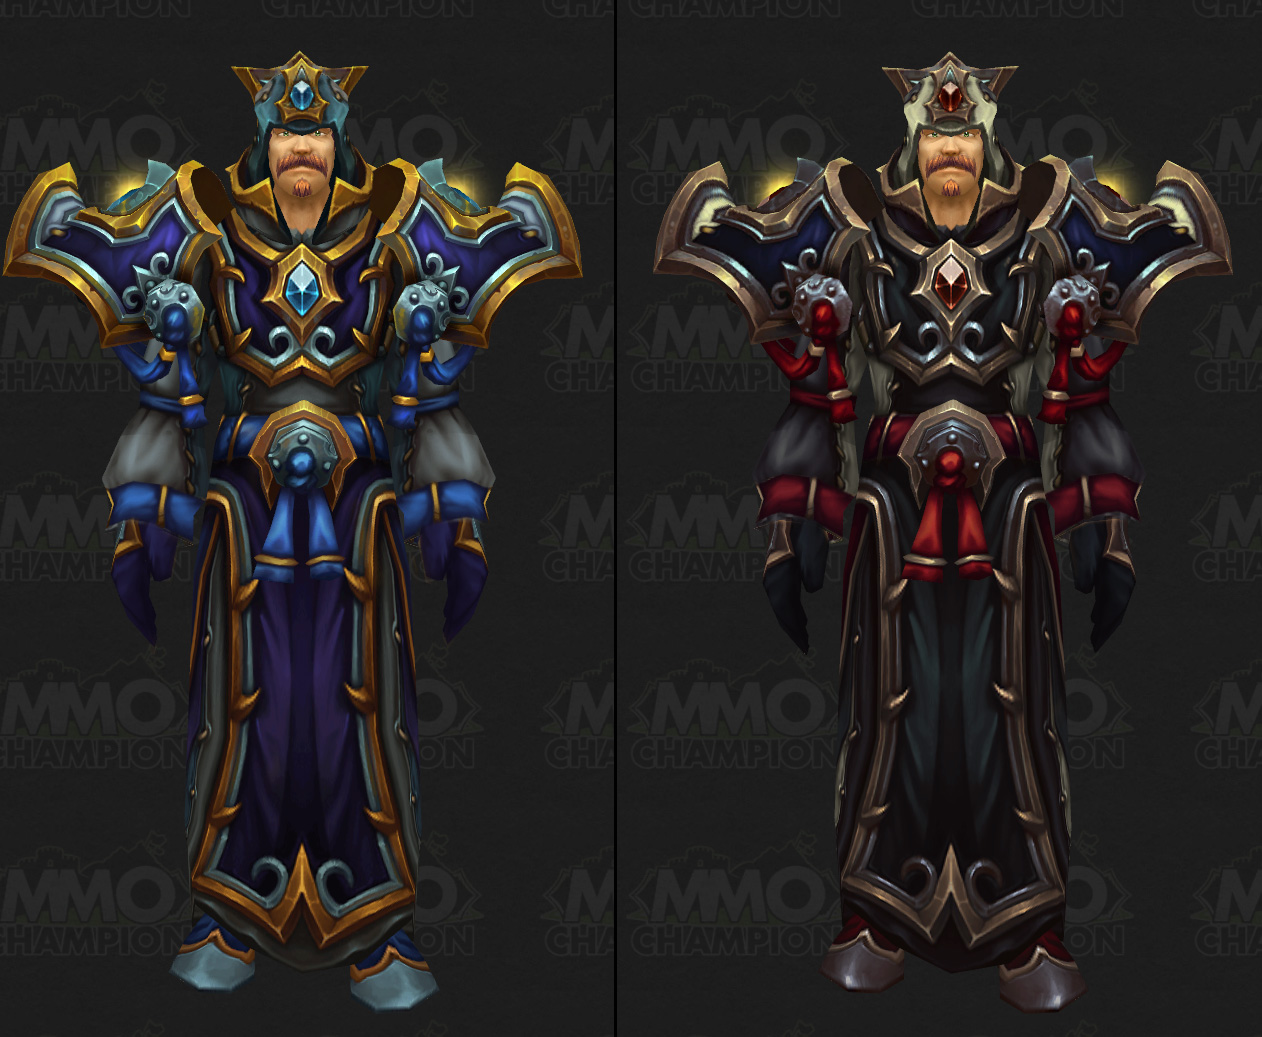 WoDEquipping for Battle WoD Crafted Armor Apr 28 Hotfixes Blue Posts Ashran - MMO-Ch&ion & WoD:Equipping for Battle WoD Crafted Armor Apr 28 Hotfixes Blue ...